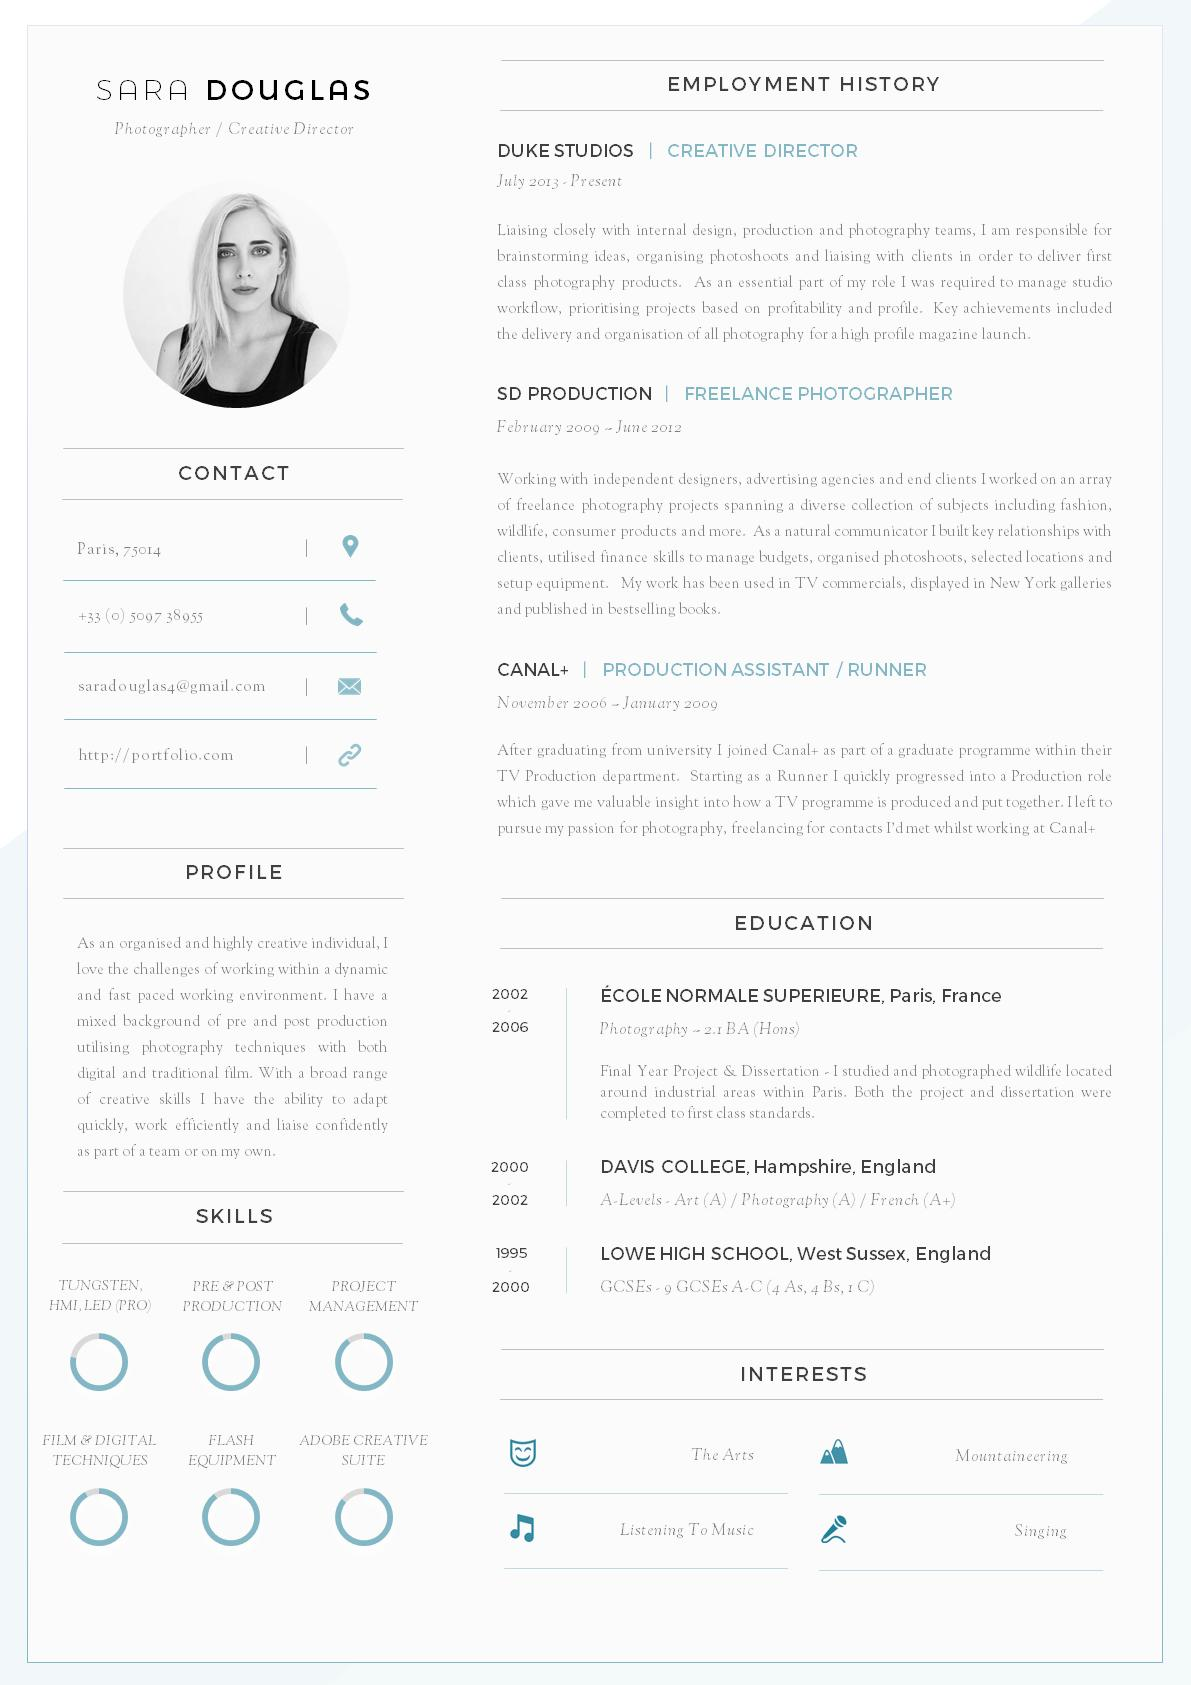 78 New Curriculum Vitae Template for Pictures